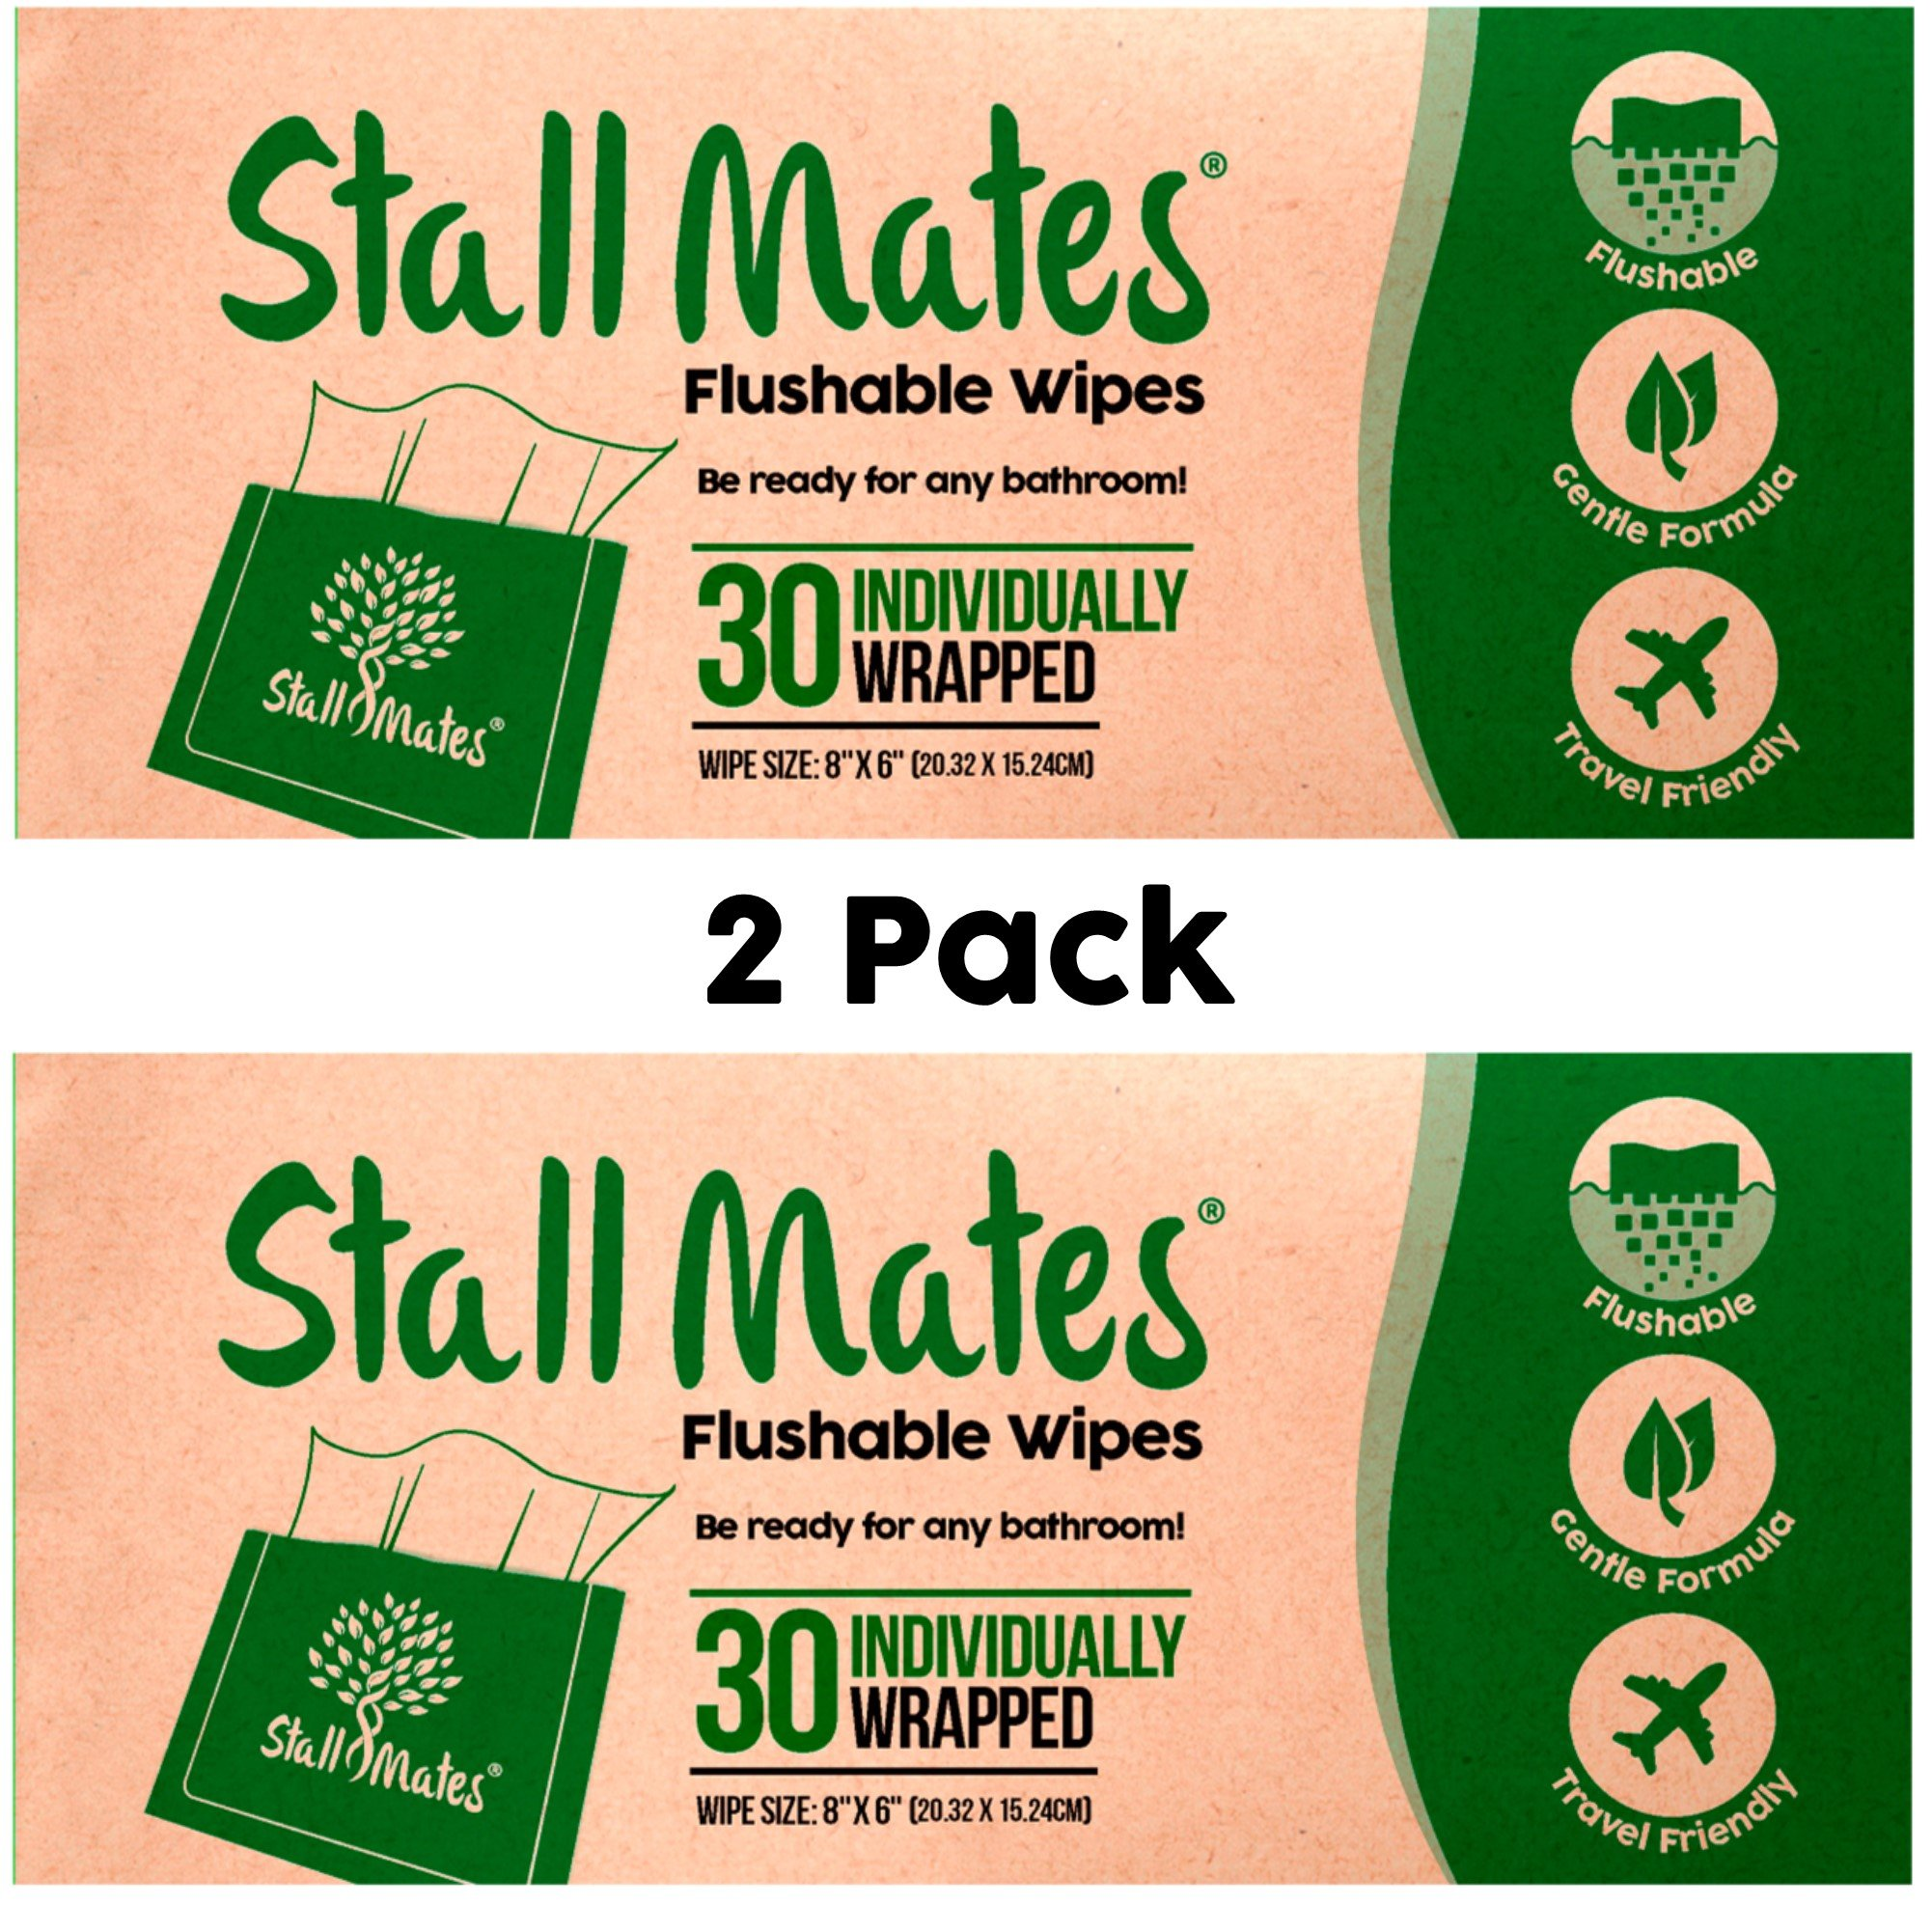 Stall Mates Wipes: Flushable, Portable, eco-Friendly Bathroom Wipes. (2 Pack)